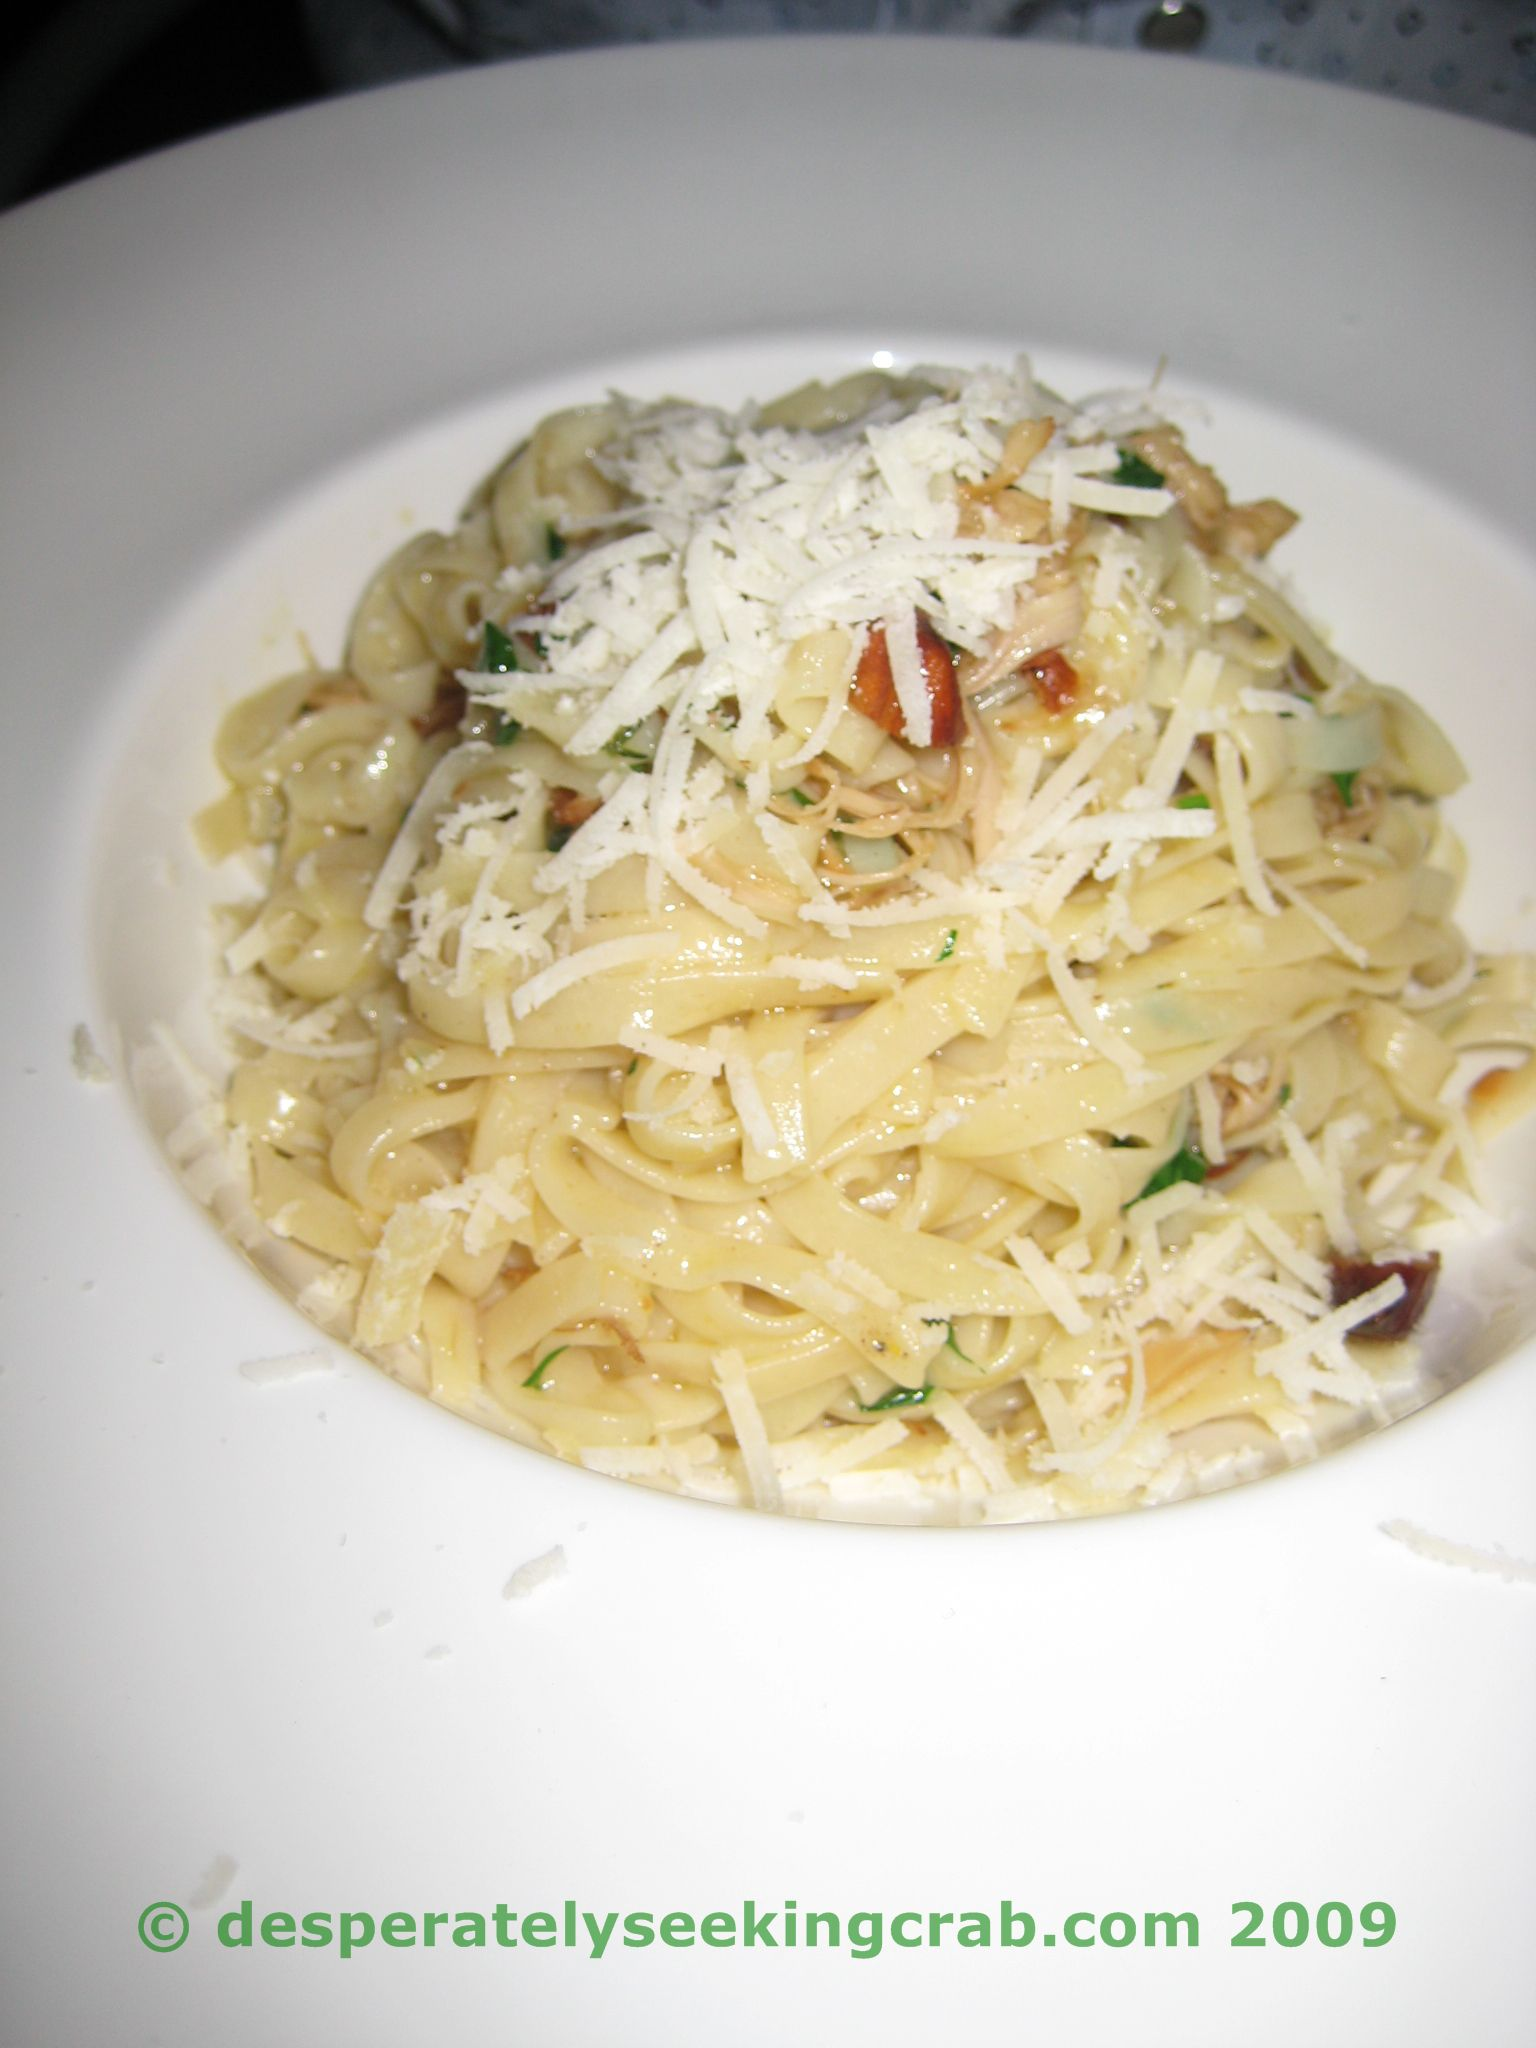 Sparrow's Rabbit Pasta